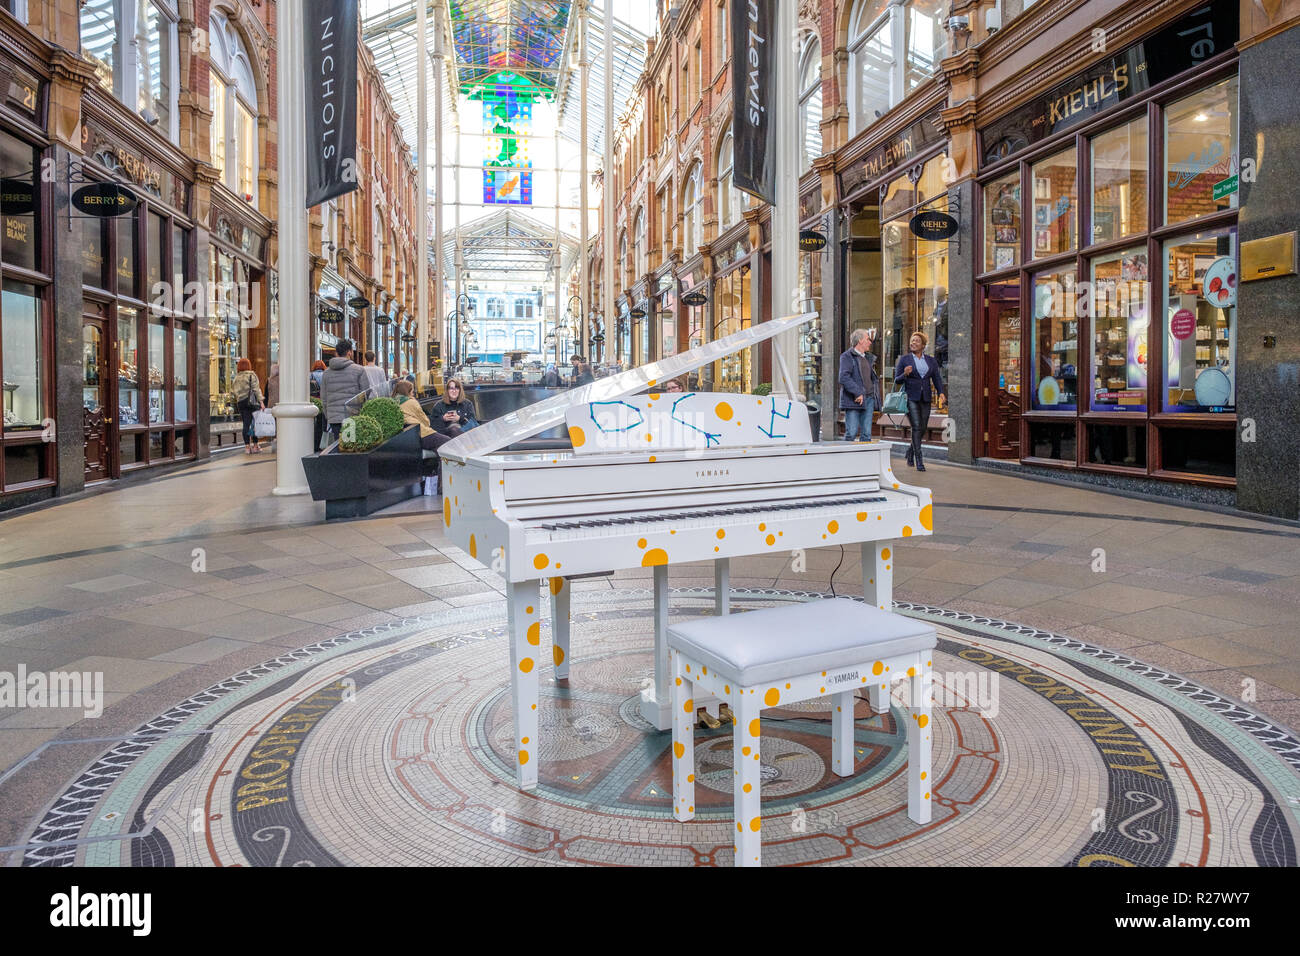 Leeds Victorian and Edwardian Shopping Arcades in the city center of Leeds. The arcades in the Victoria quarter are a center for luxury shopping - Stock Image